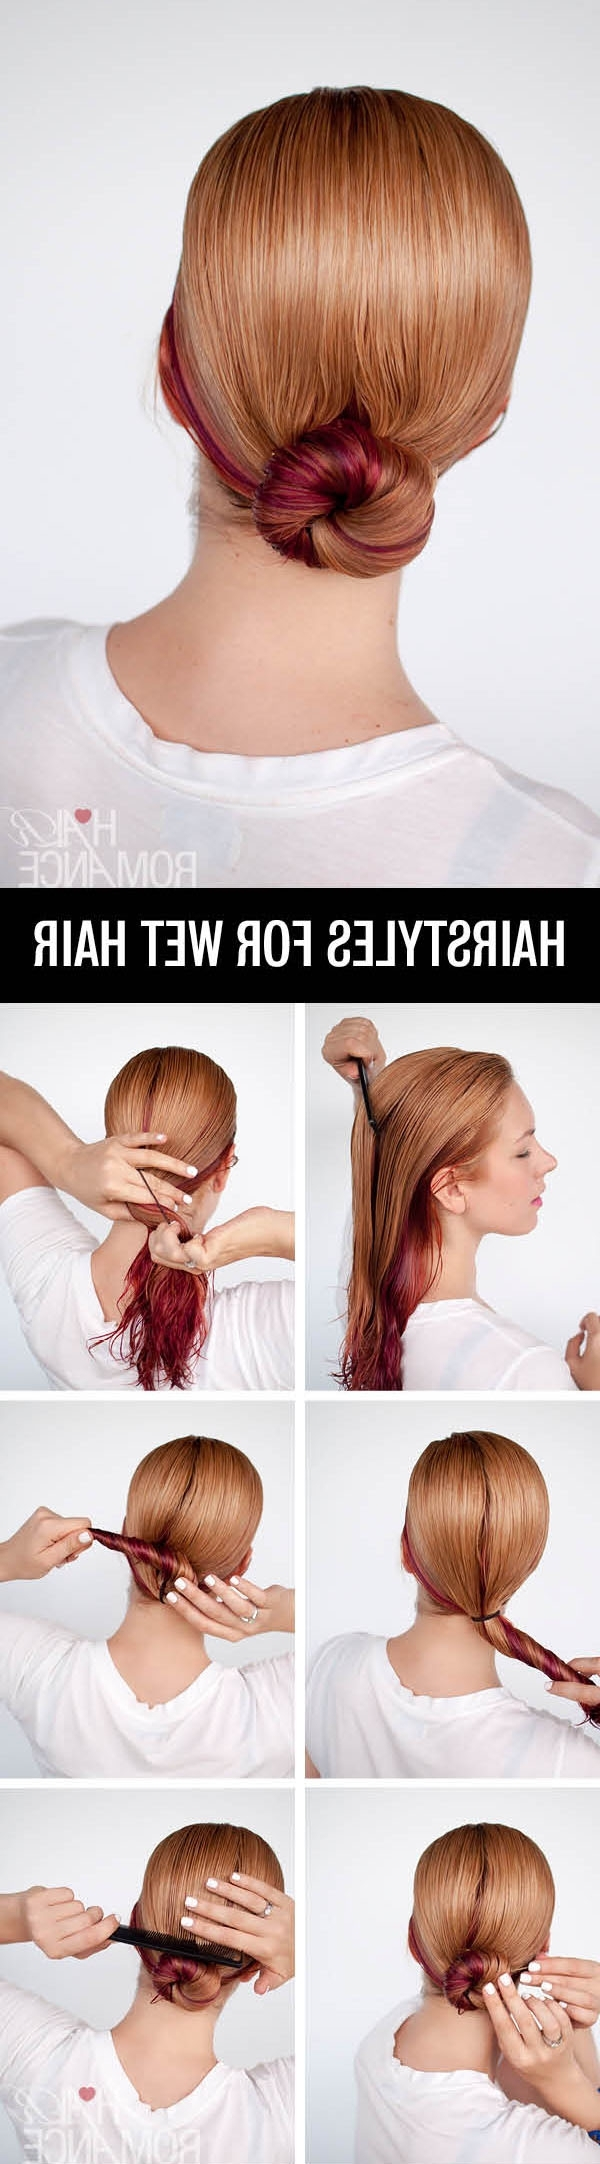 Get Ready Fast With 7 Easy Hairstyle Tutorials For Wet Hair – Hair Intended For Wet Hair Updo Hairstyles (Gallery 9 of 15)